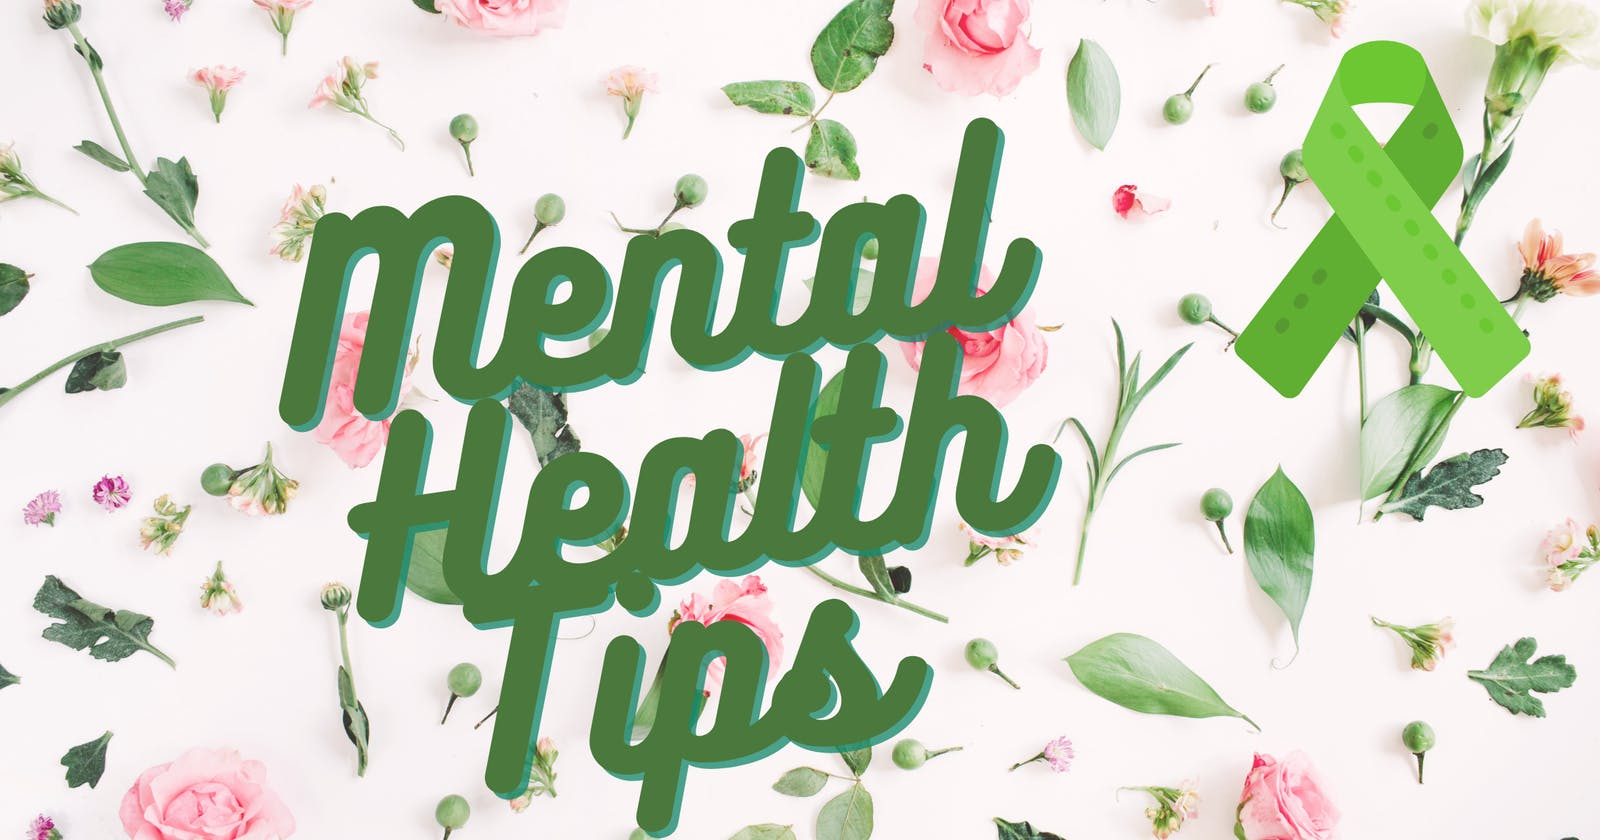 Mental Health Tips and Tricks for the Tech World